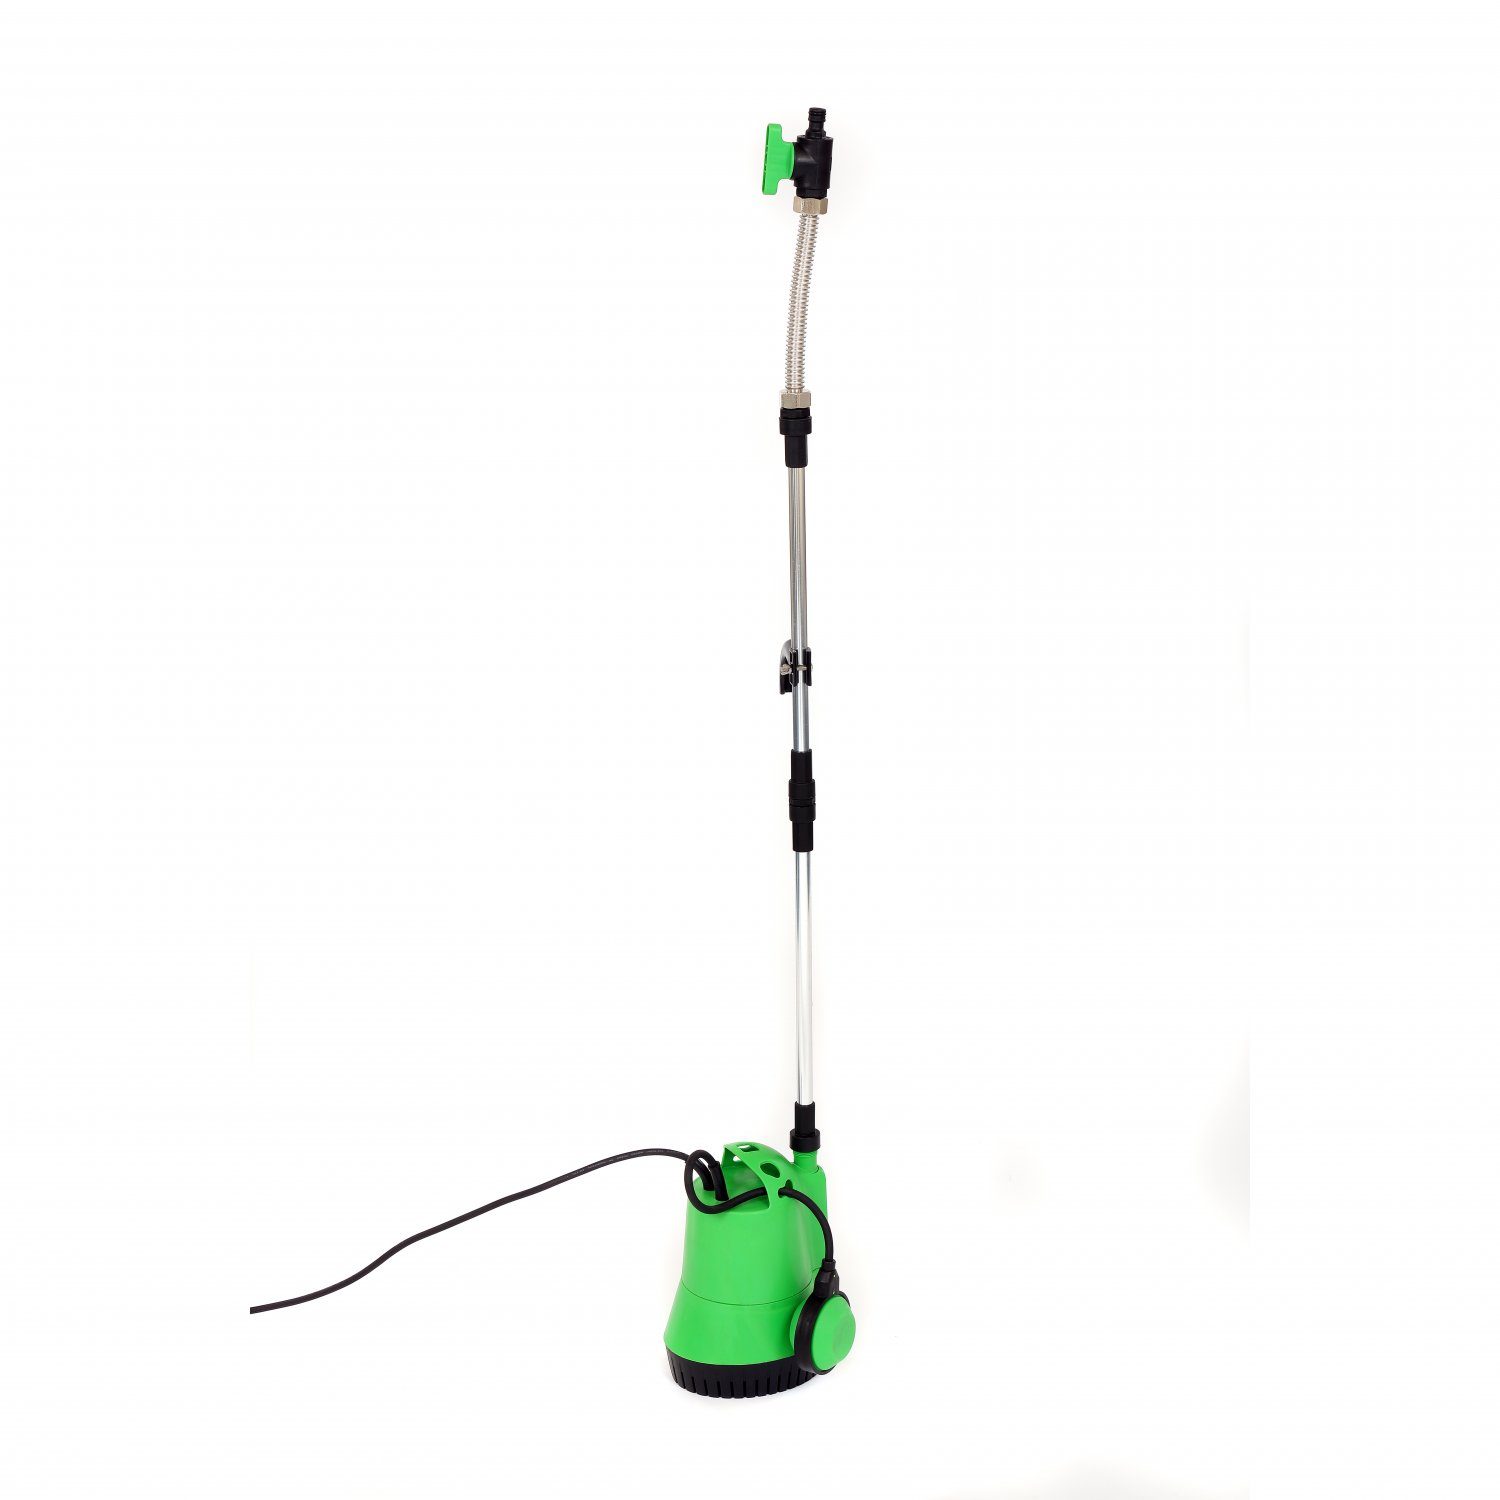 350W Garden Submersible Water Butt Pump 2500l/hr with 10m Cable